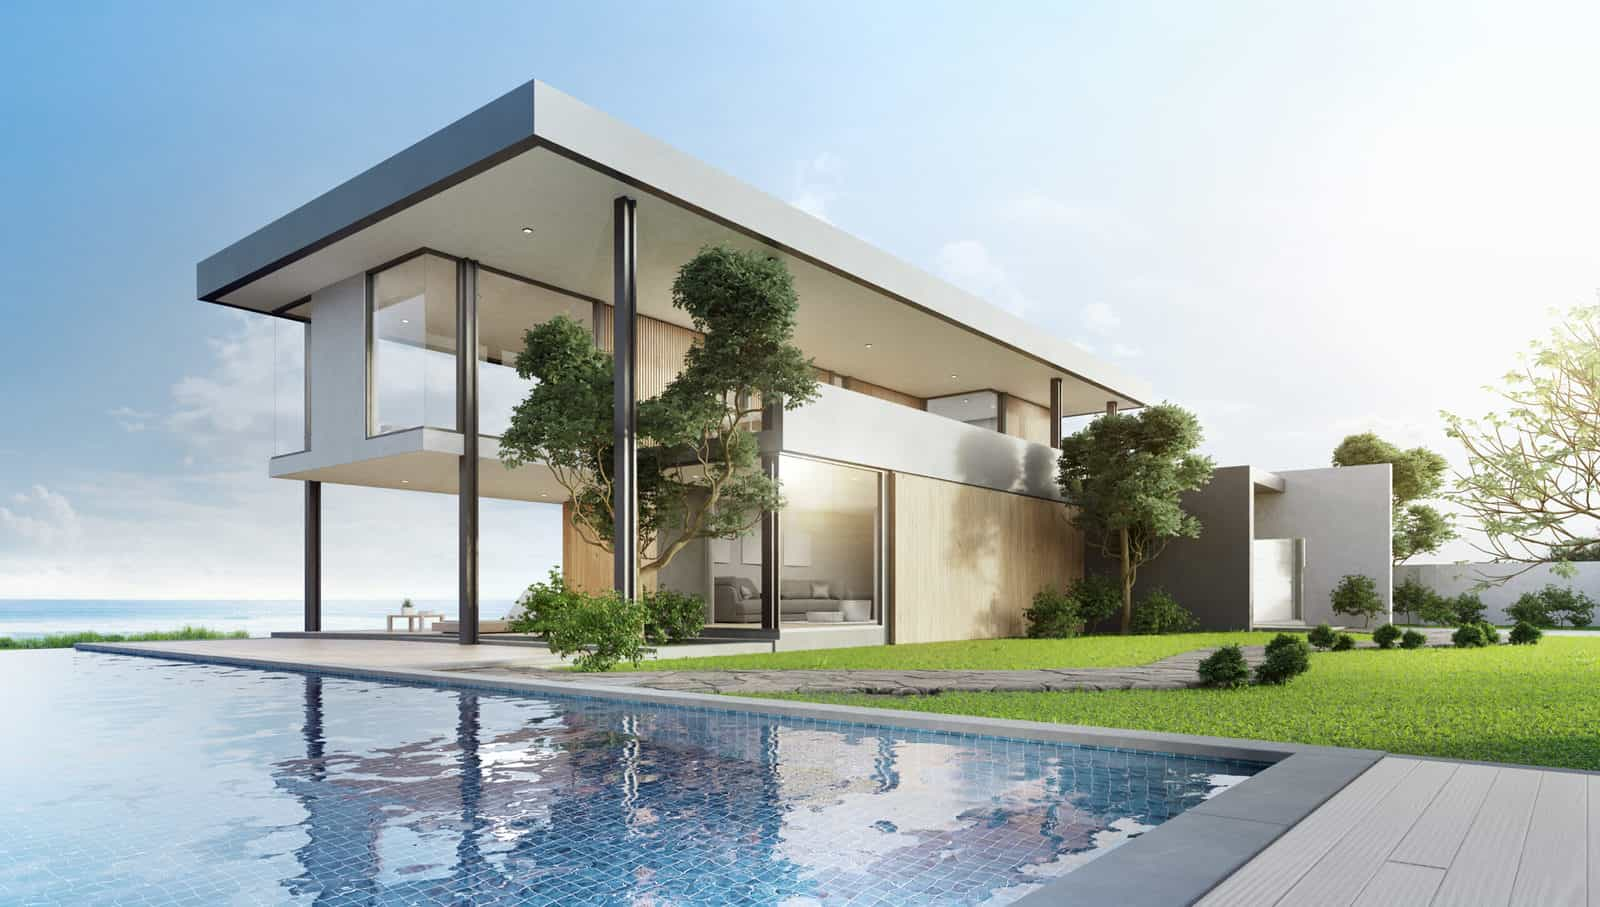 Luxury beach house with sea view swimming pool and terrace in modern design. Empty wooden floor deck at vacation home.